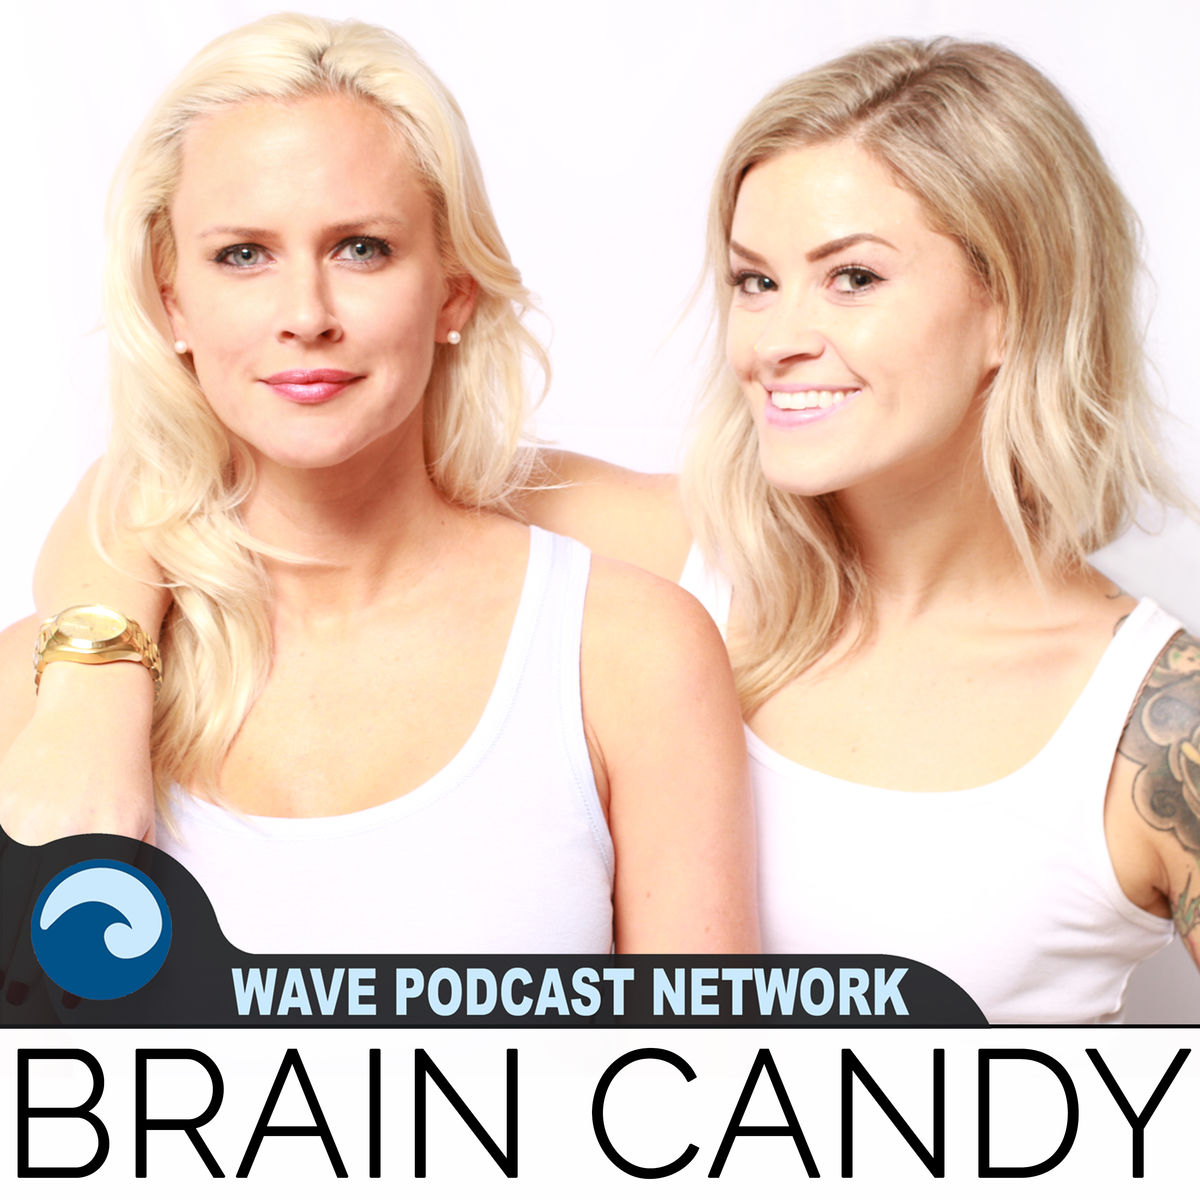 The Brain Candy Podcast Promo Codes   Podcast Promo Codes